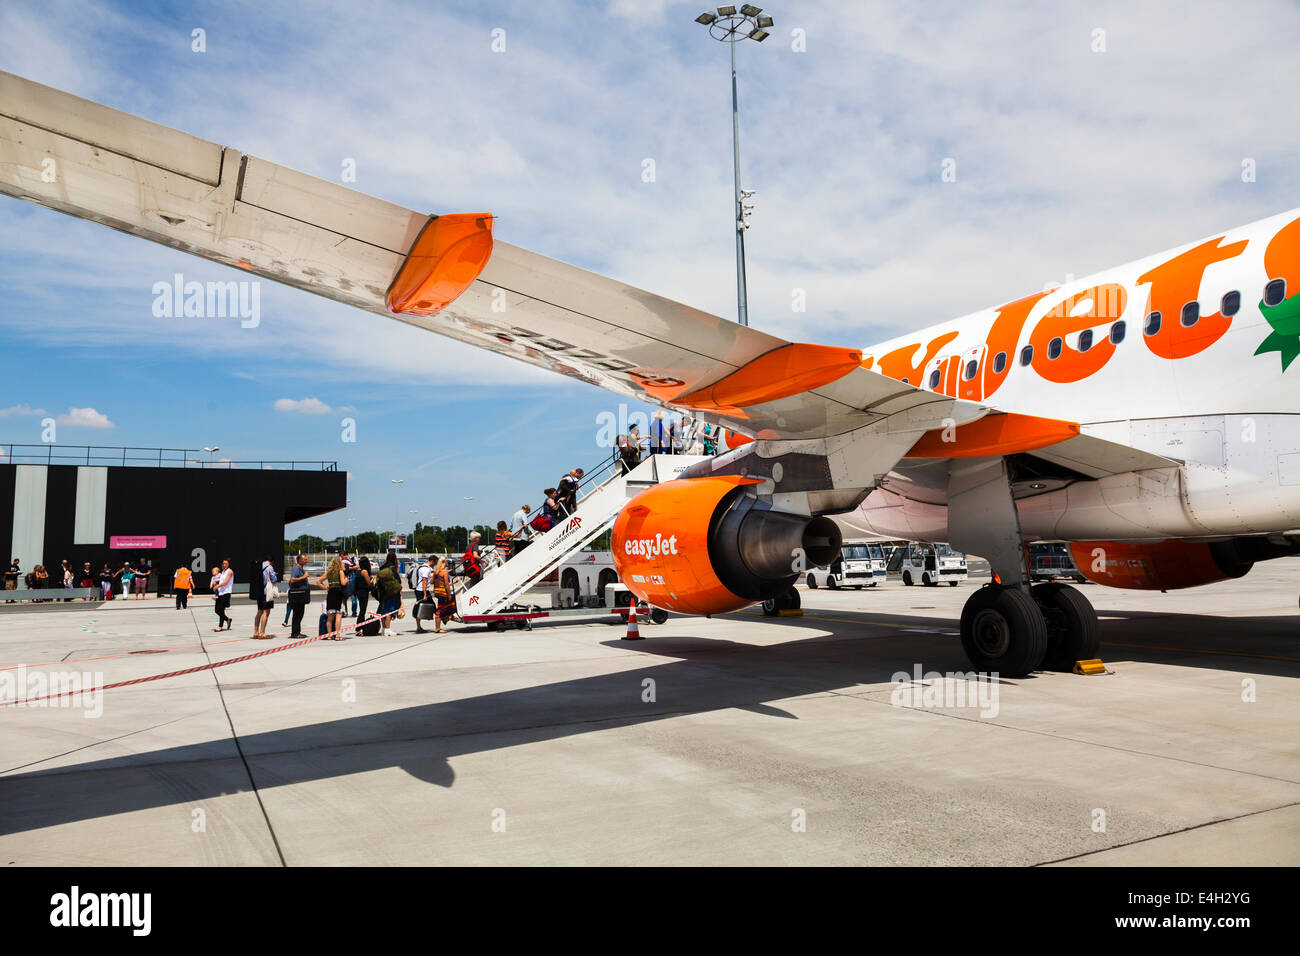 Passengers boarding via front stairs to Easyjet plane. - Stock Image